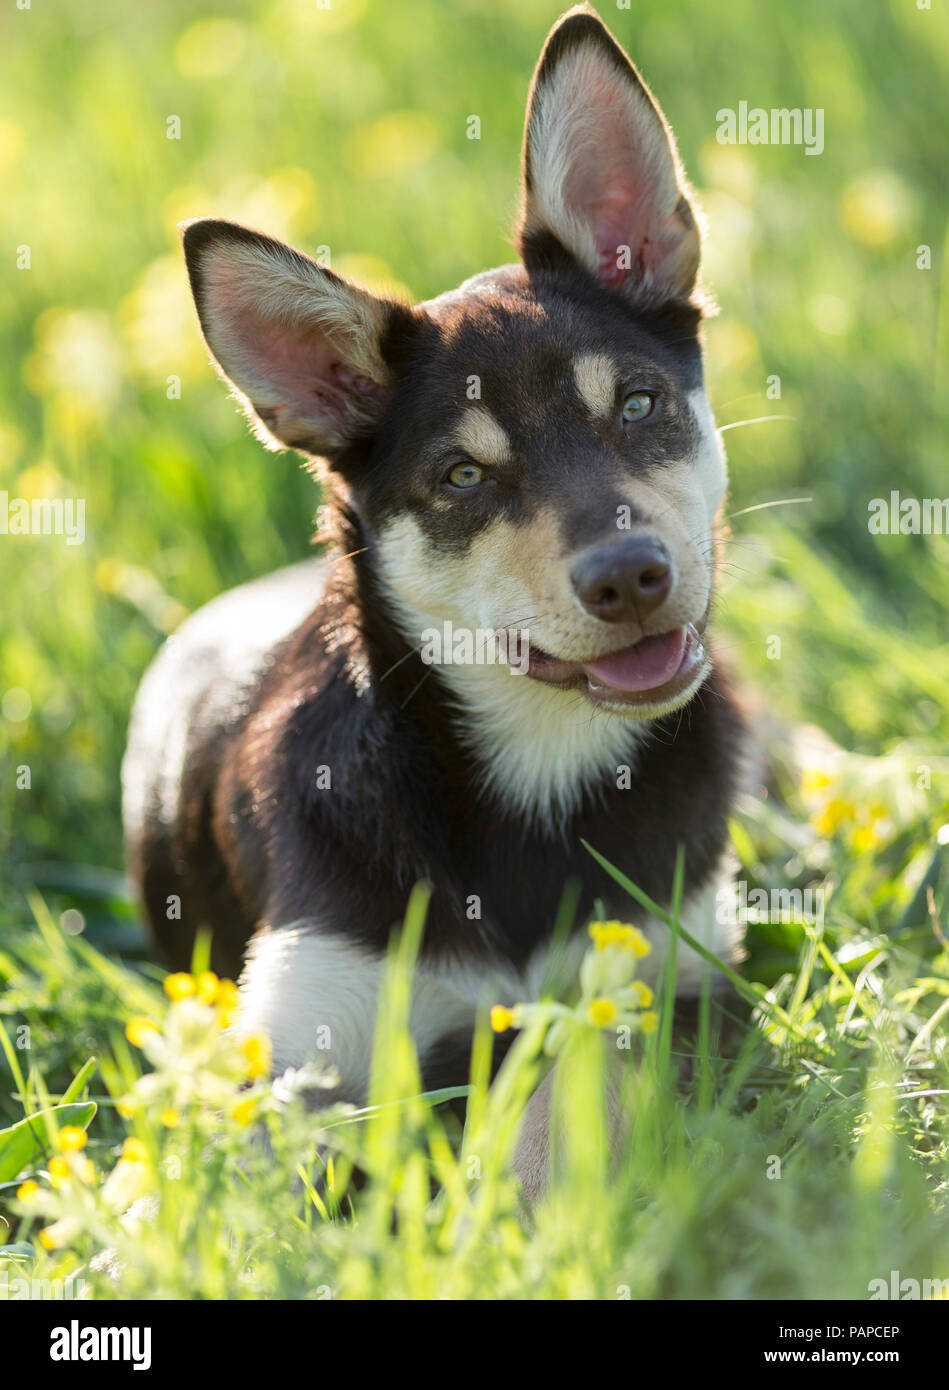 Australian Working Kelpie. Juvenile dog lying in a flowering meadow, with head cocked. Germany. - Stock Image